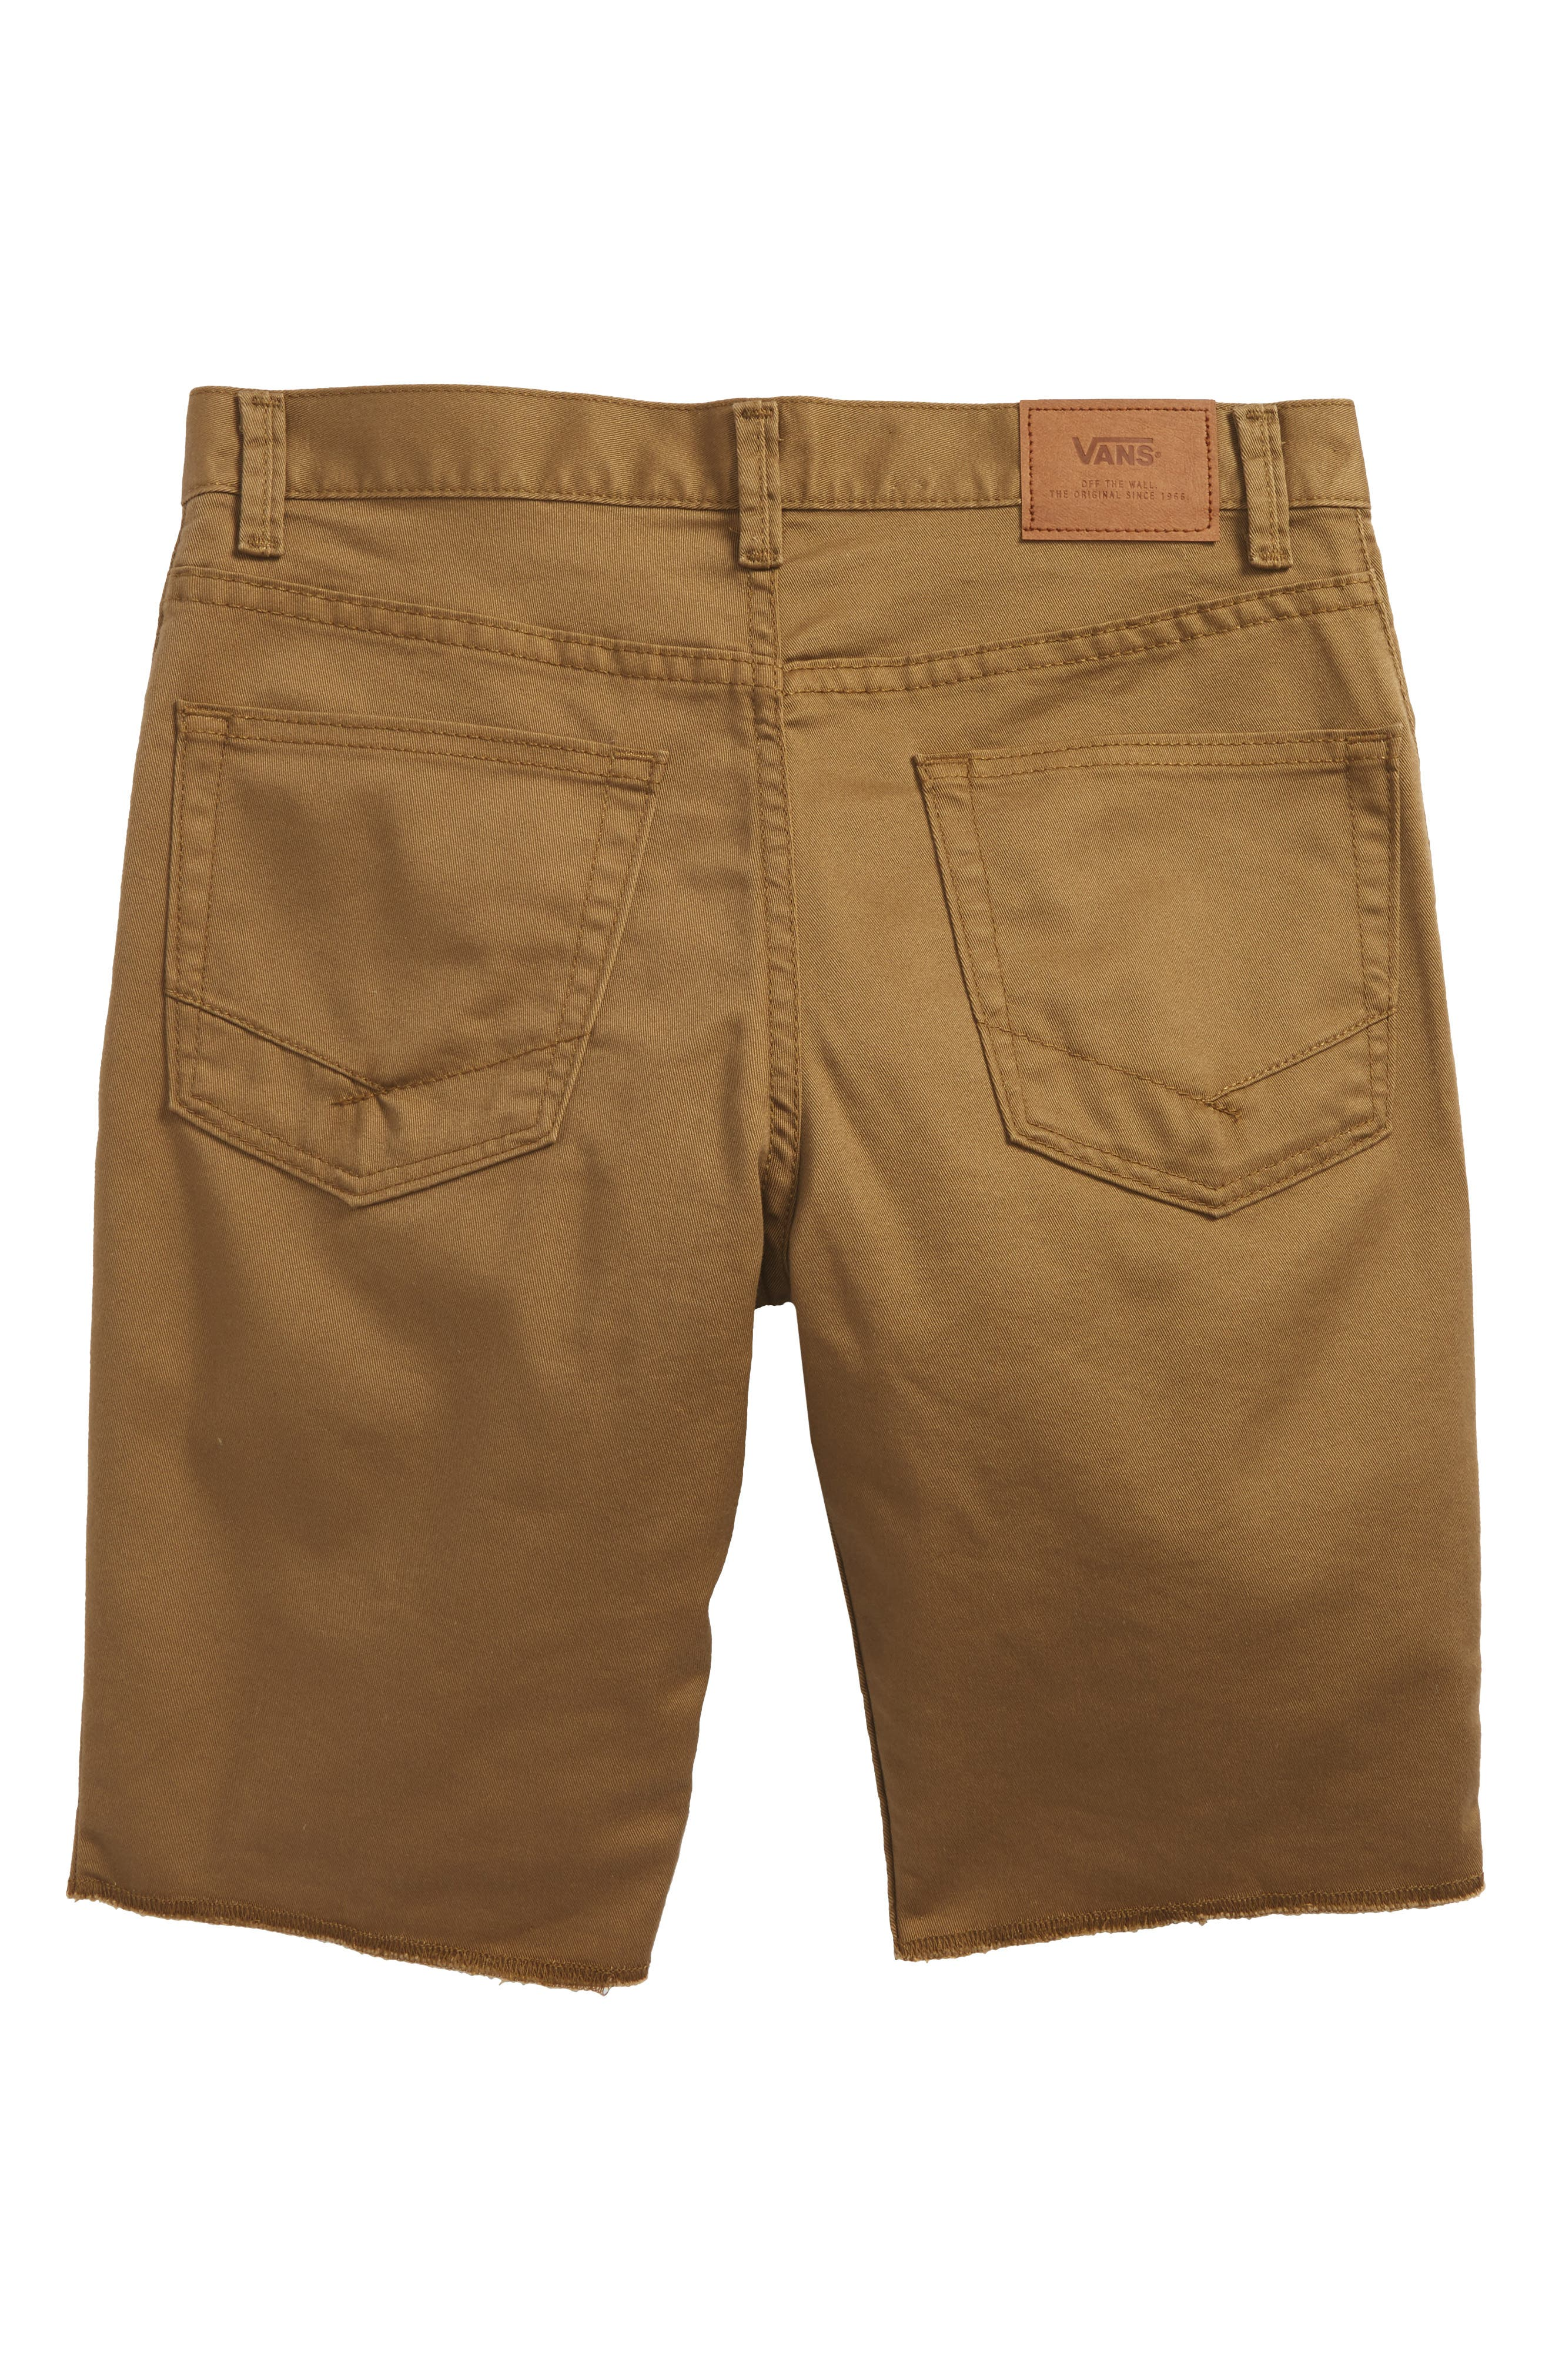 Covina II - Anthony Van Engelen Twill Shorts,                             Alternate thumbnail 5, color,